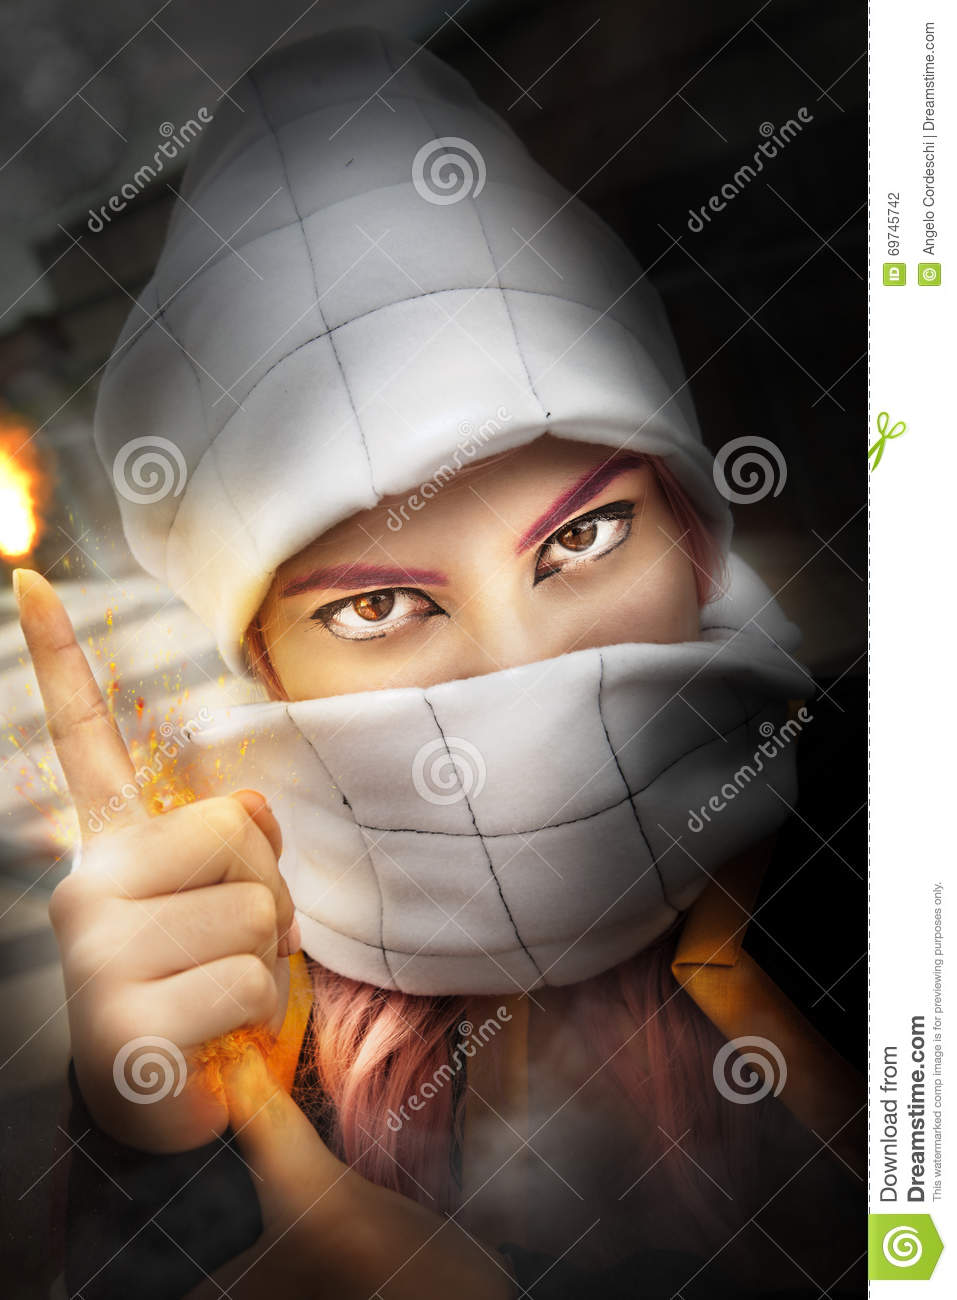 Muslim fire in hand. Cosplayer. Woman with her face covered